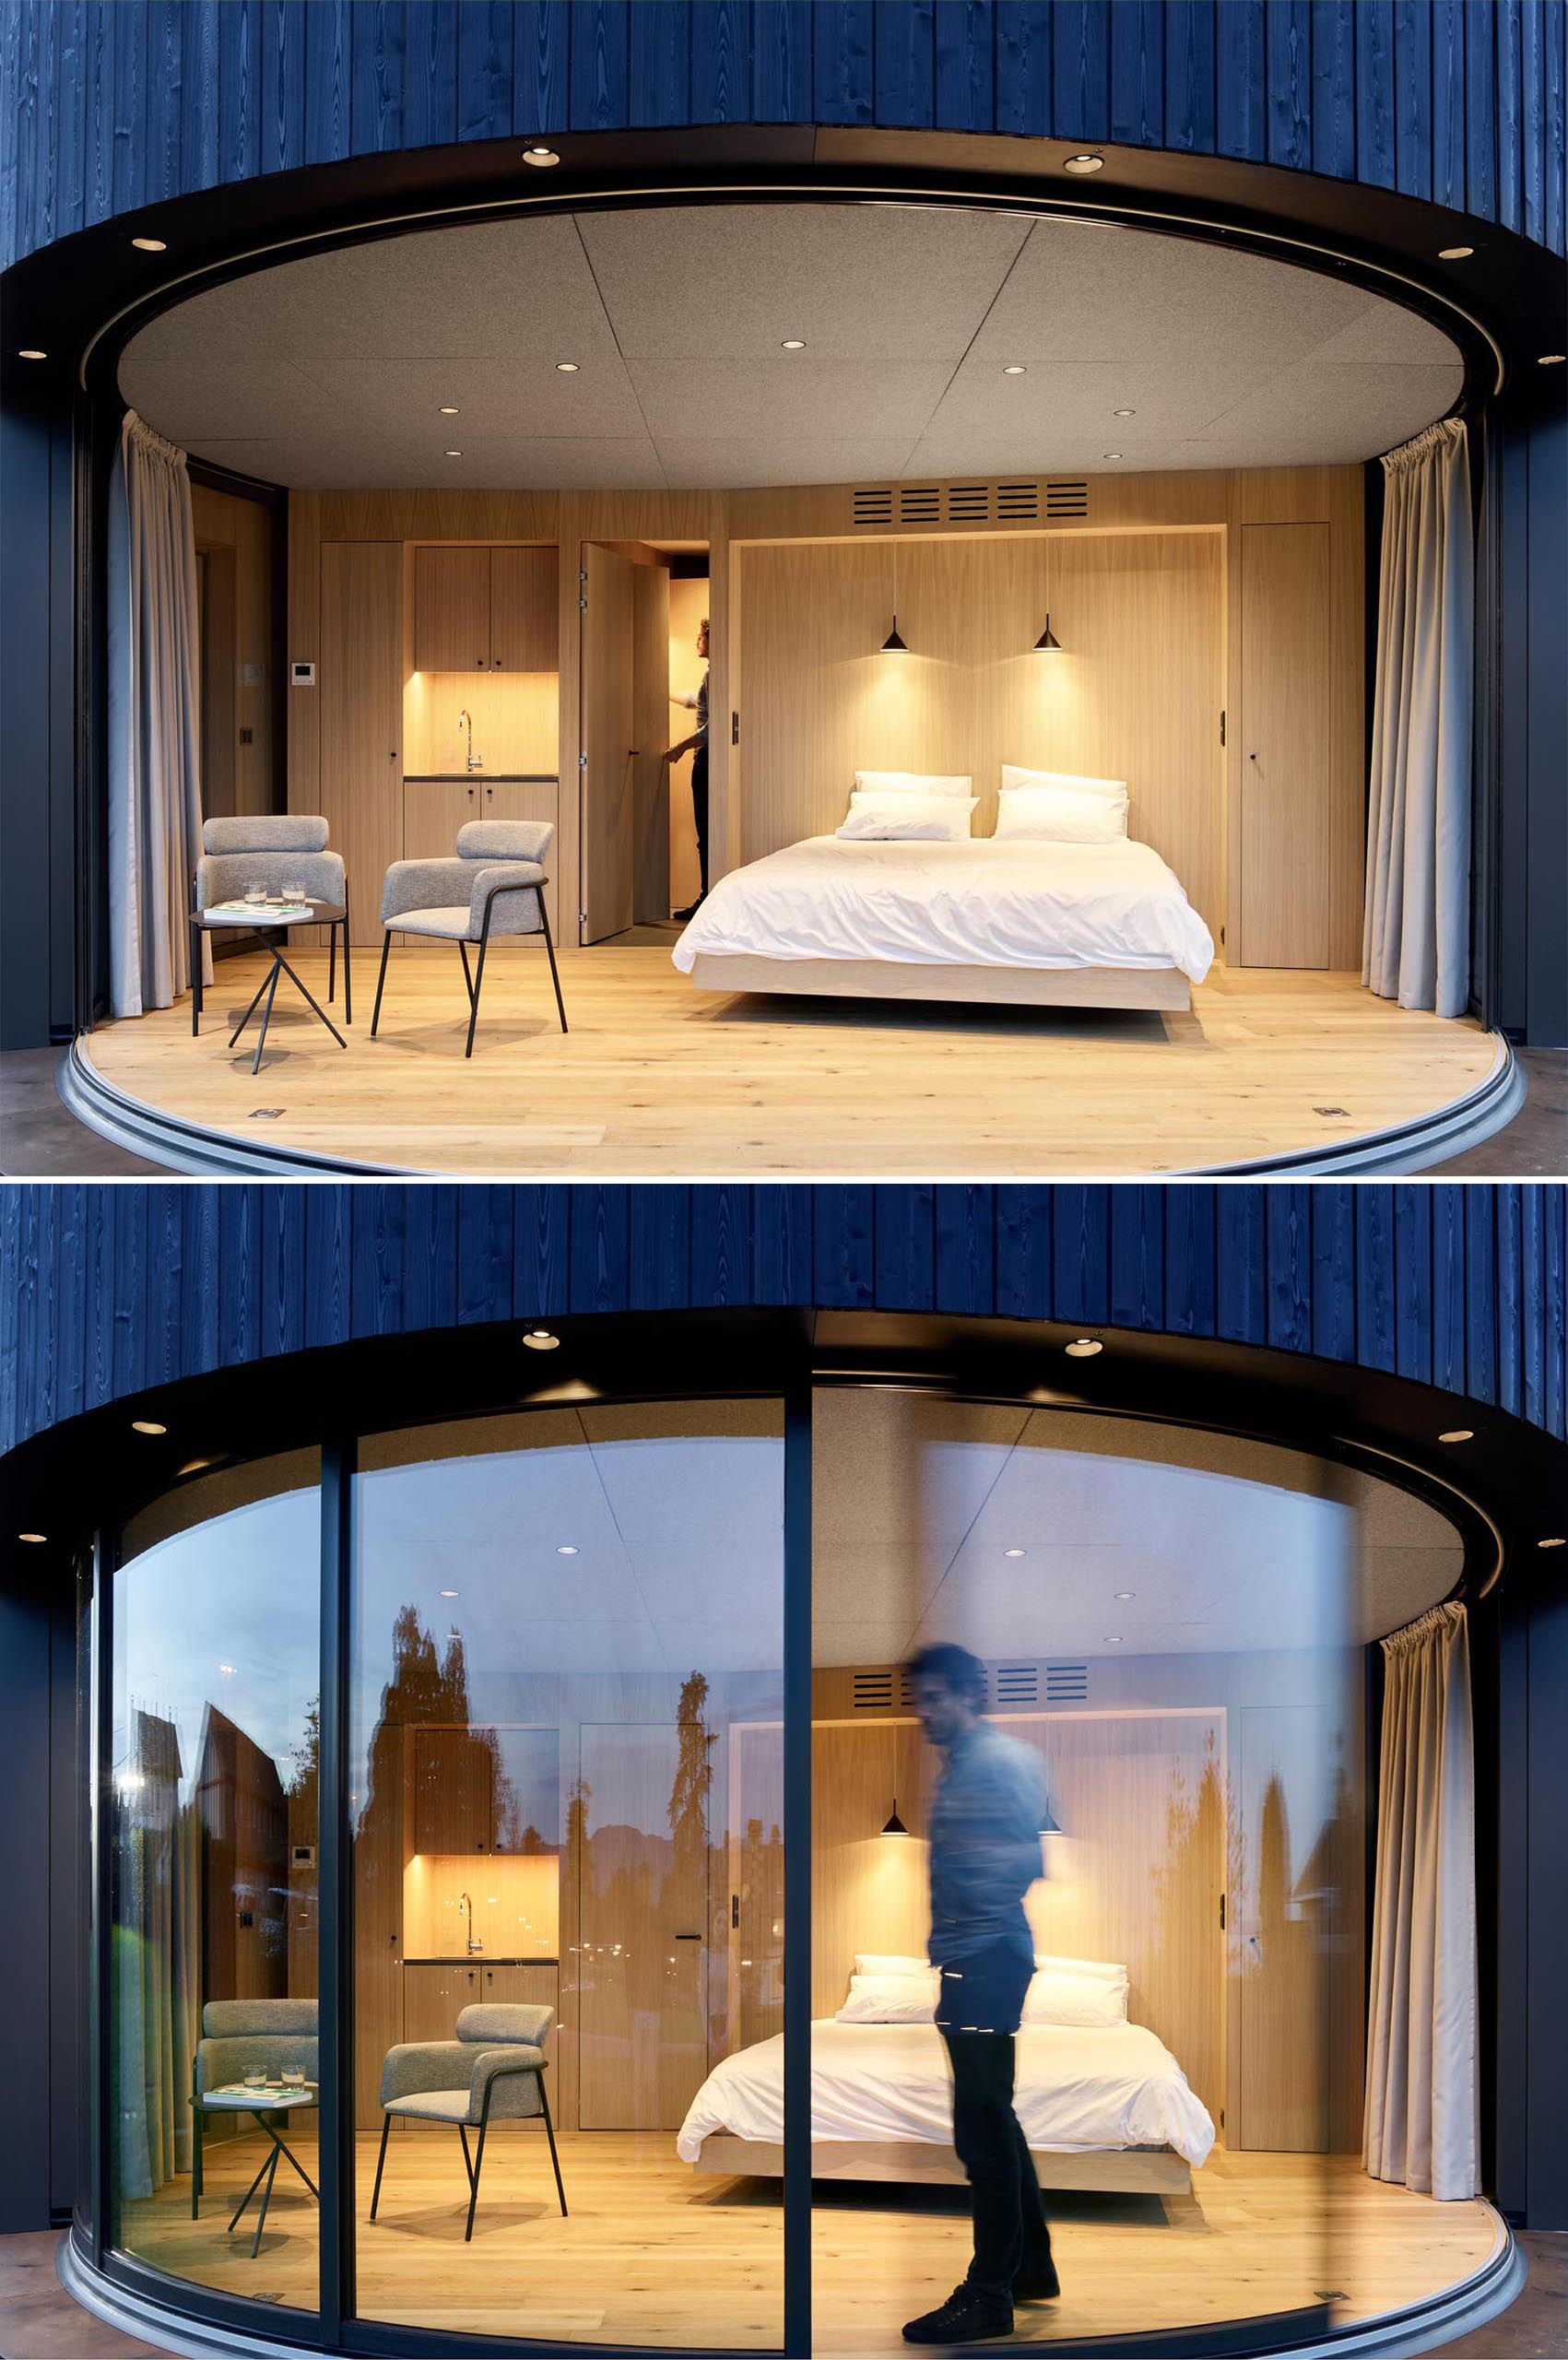 A modern round cabin with a curved glass wall that disappears.